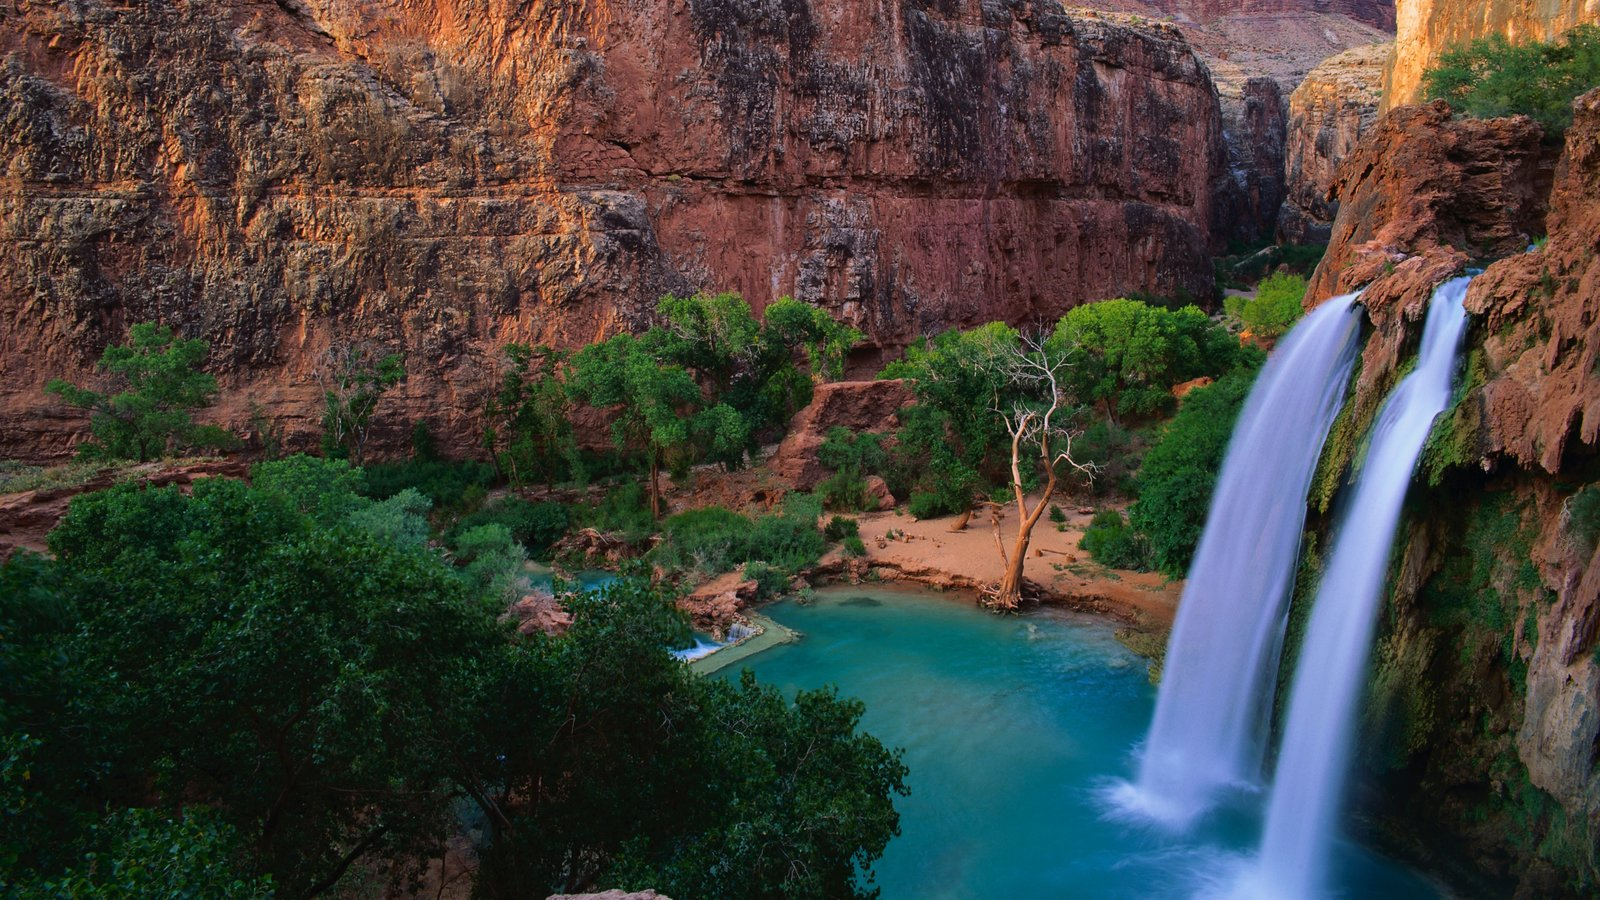 Phoenix which includes a waterfall, landscape views and a gorge or canyon